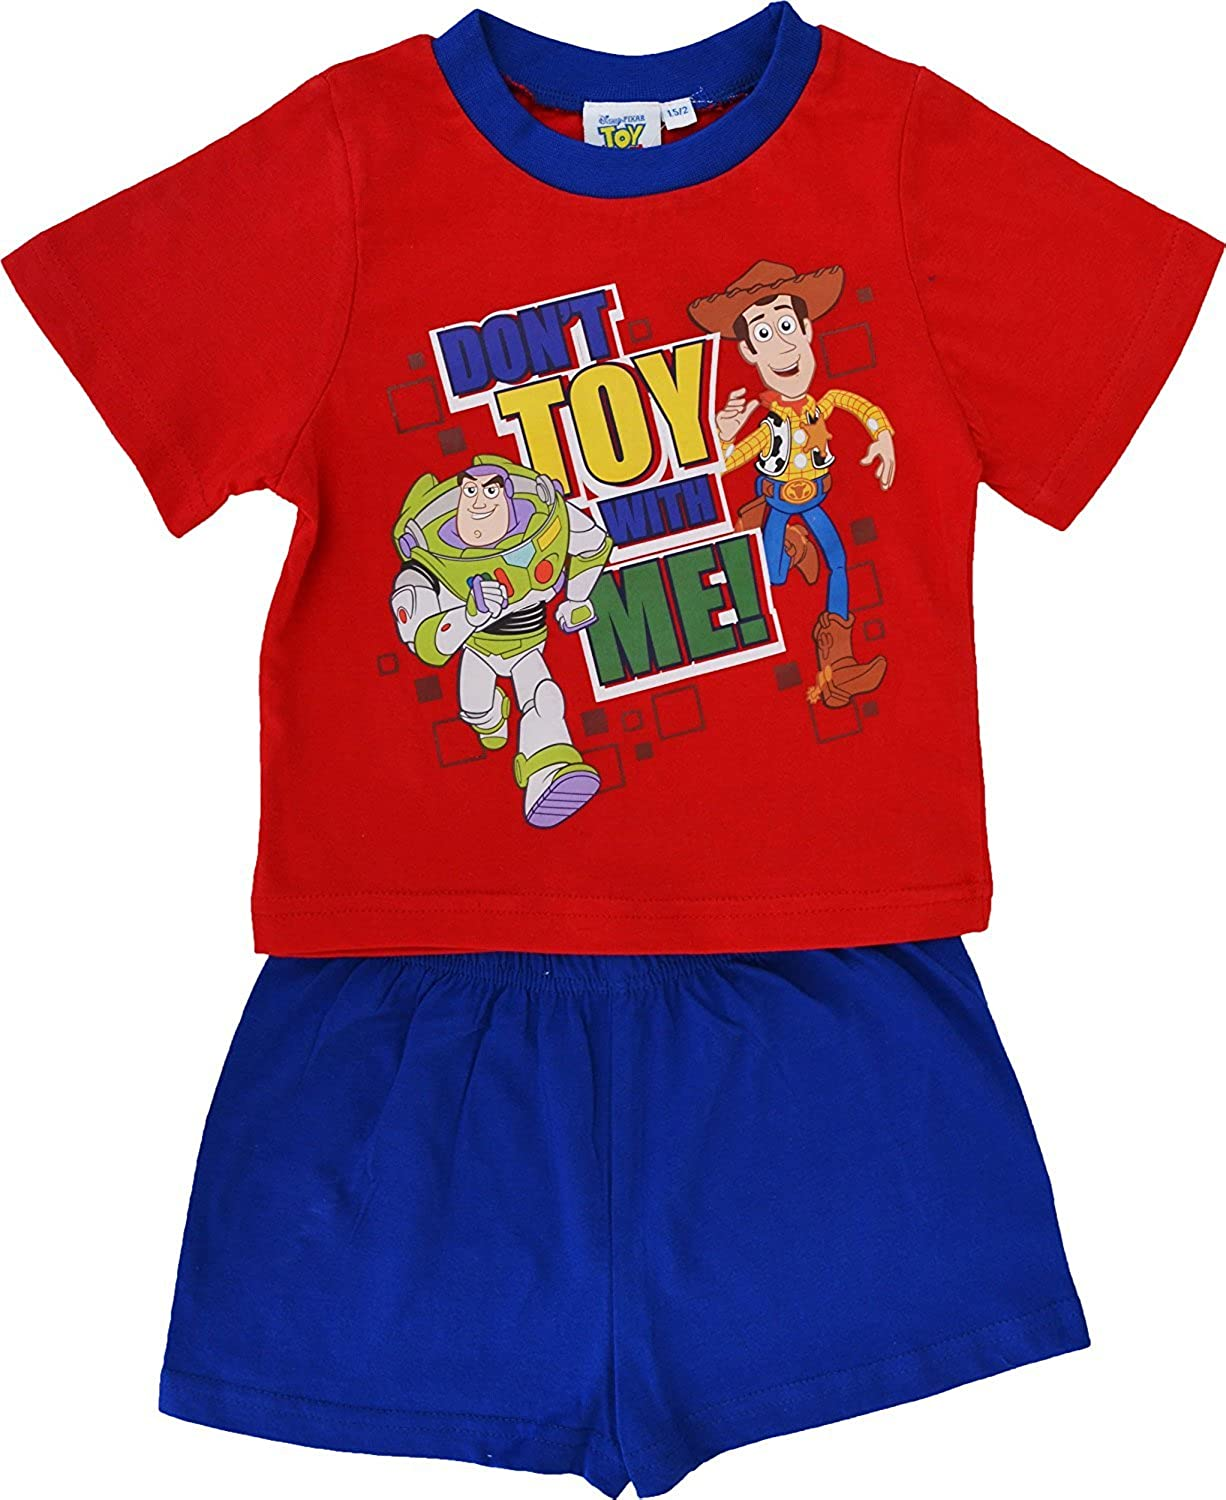 Disney Boys Toy Story Buzz Lightyear Short Pyjamas Size 18 Months to 5 Years